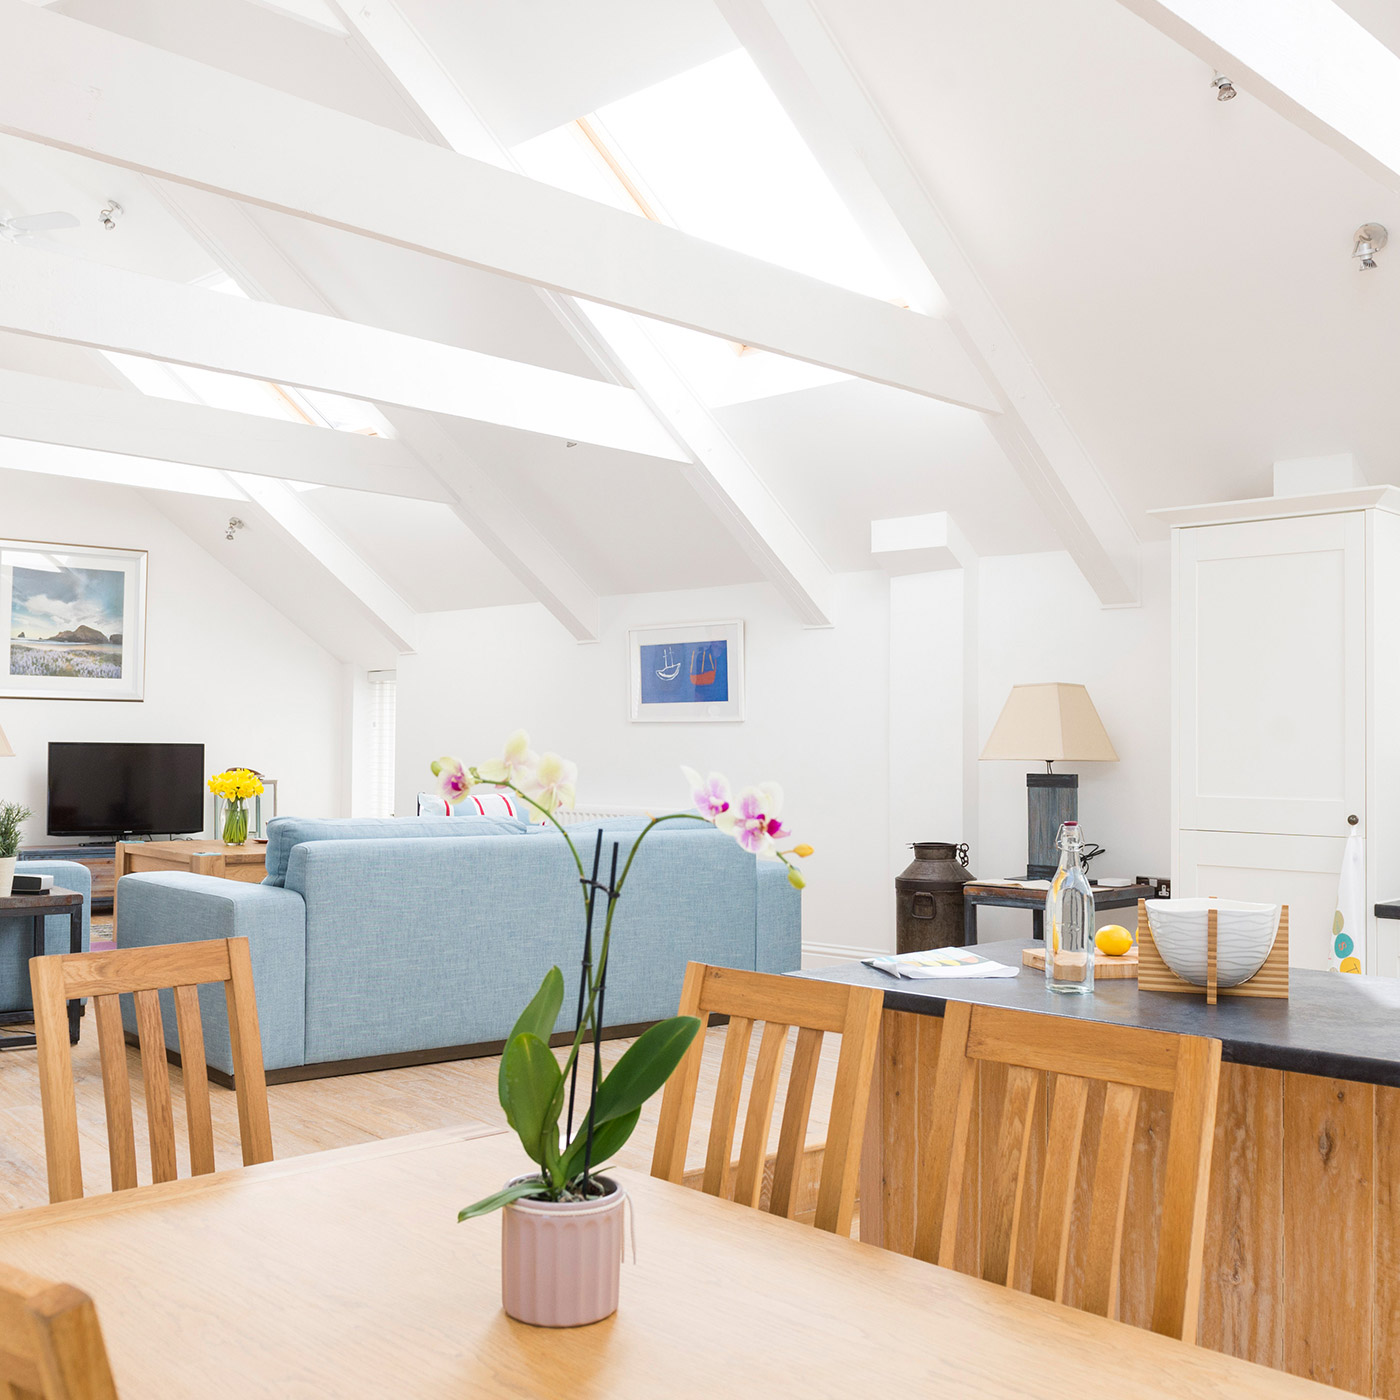 Luxury apartment in St Ives, accommodation in Cornwall.